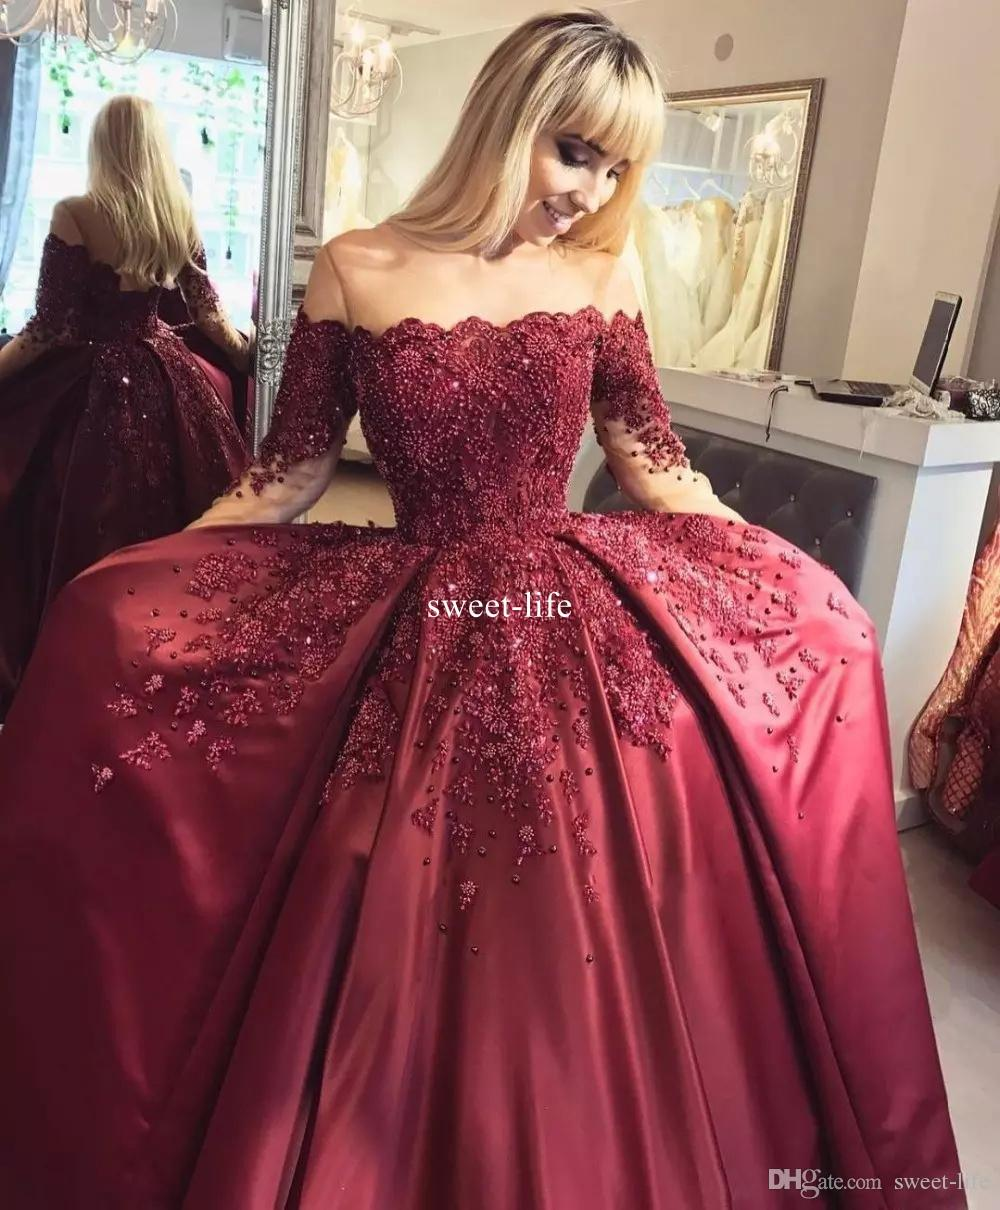 6955c485de1d5 Long Burgundy Prom Dress With Beaded Top – DACC